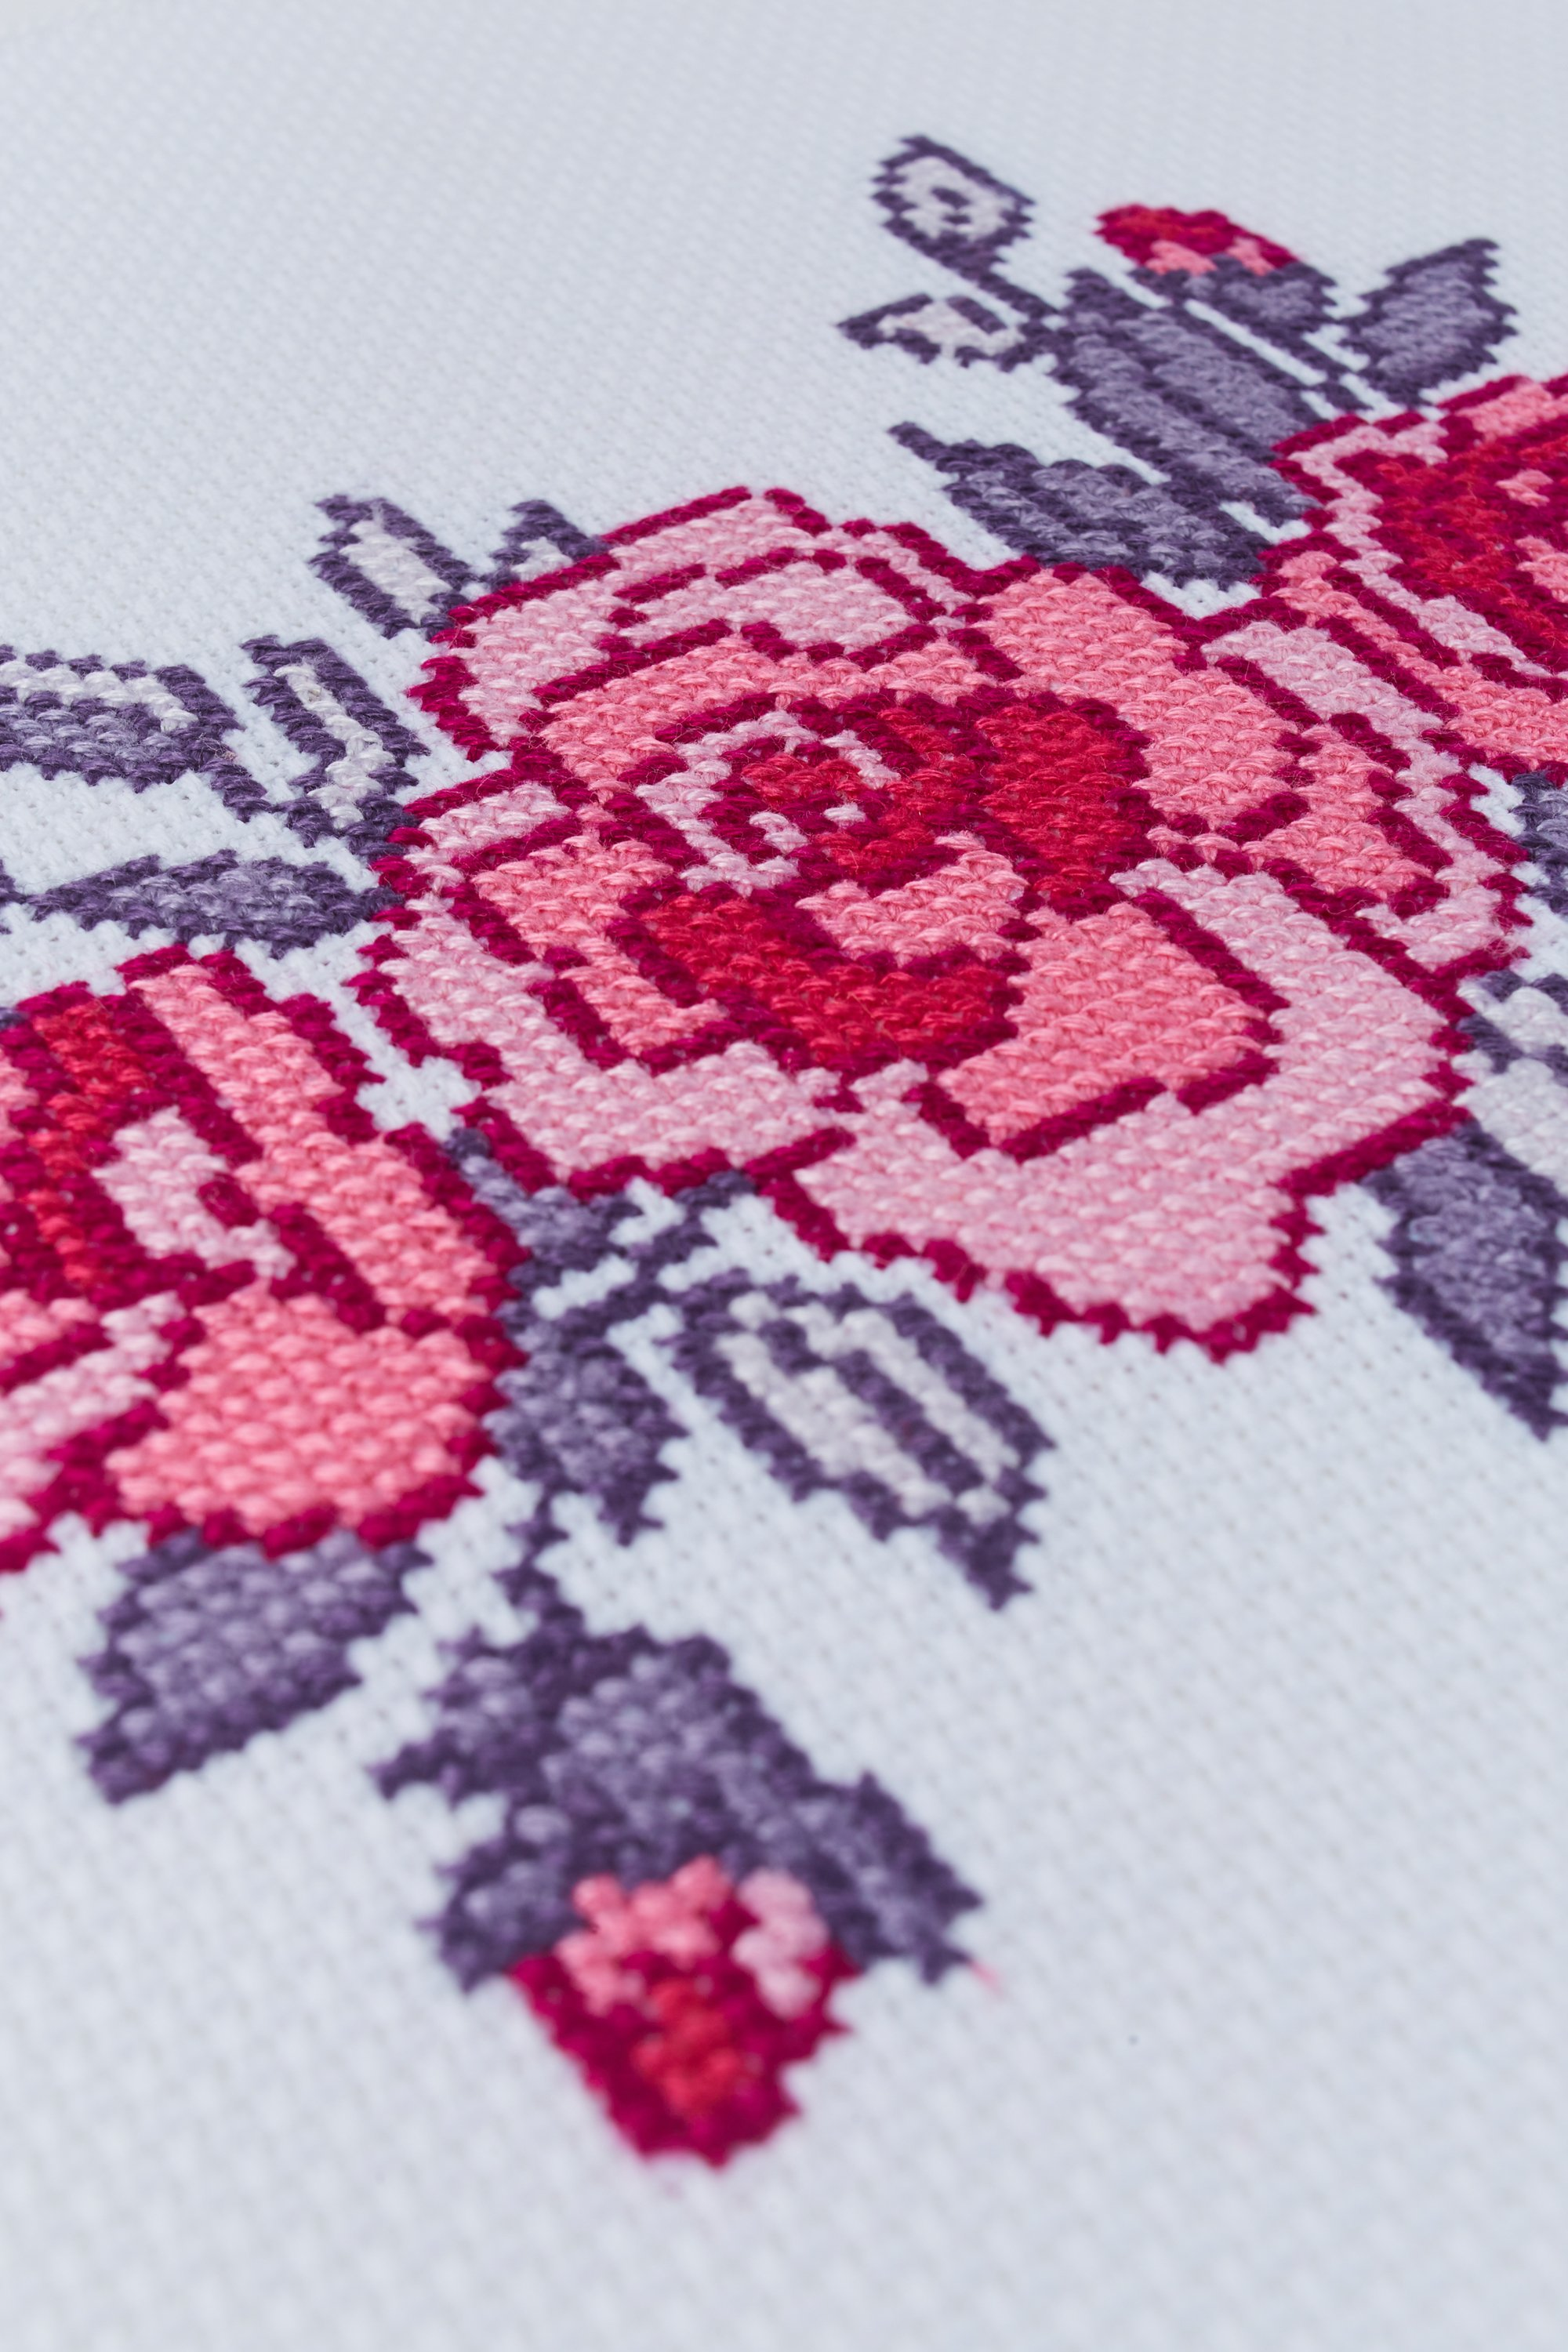 DIY Chart Counted Cross Stitch Patterns Needlework embroidery Rambling Roses